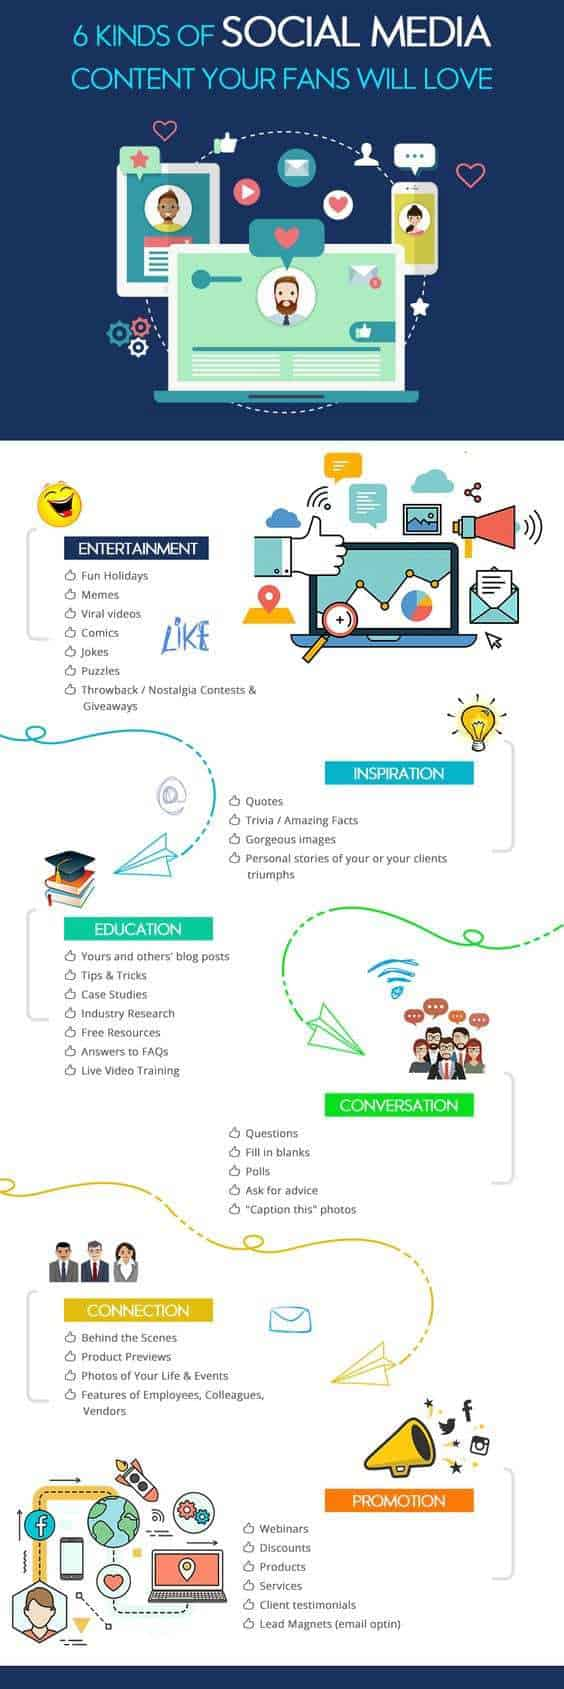 For more information on the different kinds of social media content that is sure to get all the likes from your fans, check out this great infographic!